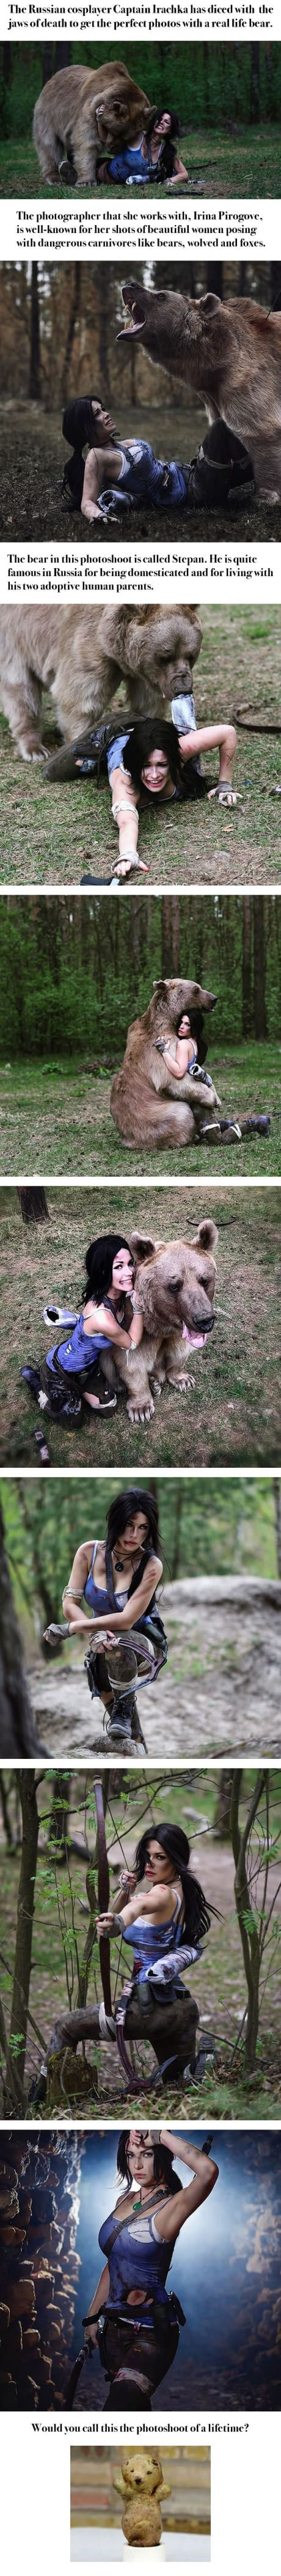 Lara Croft Cosplayer Poses With Actual, Giant Bear!